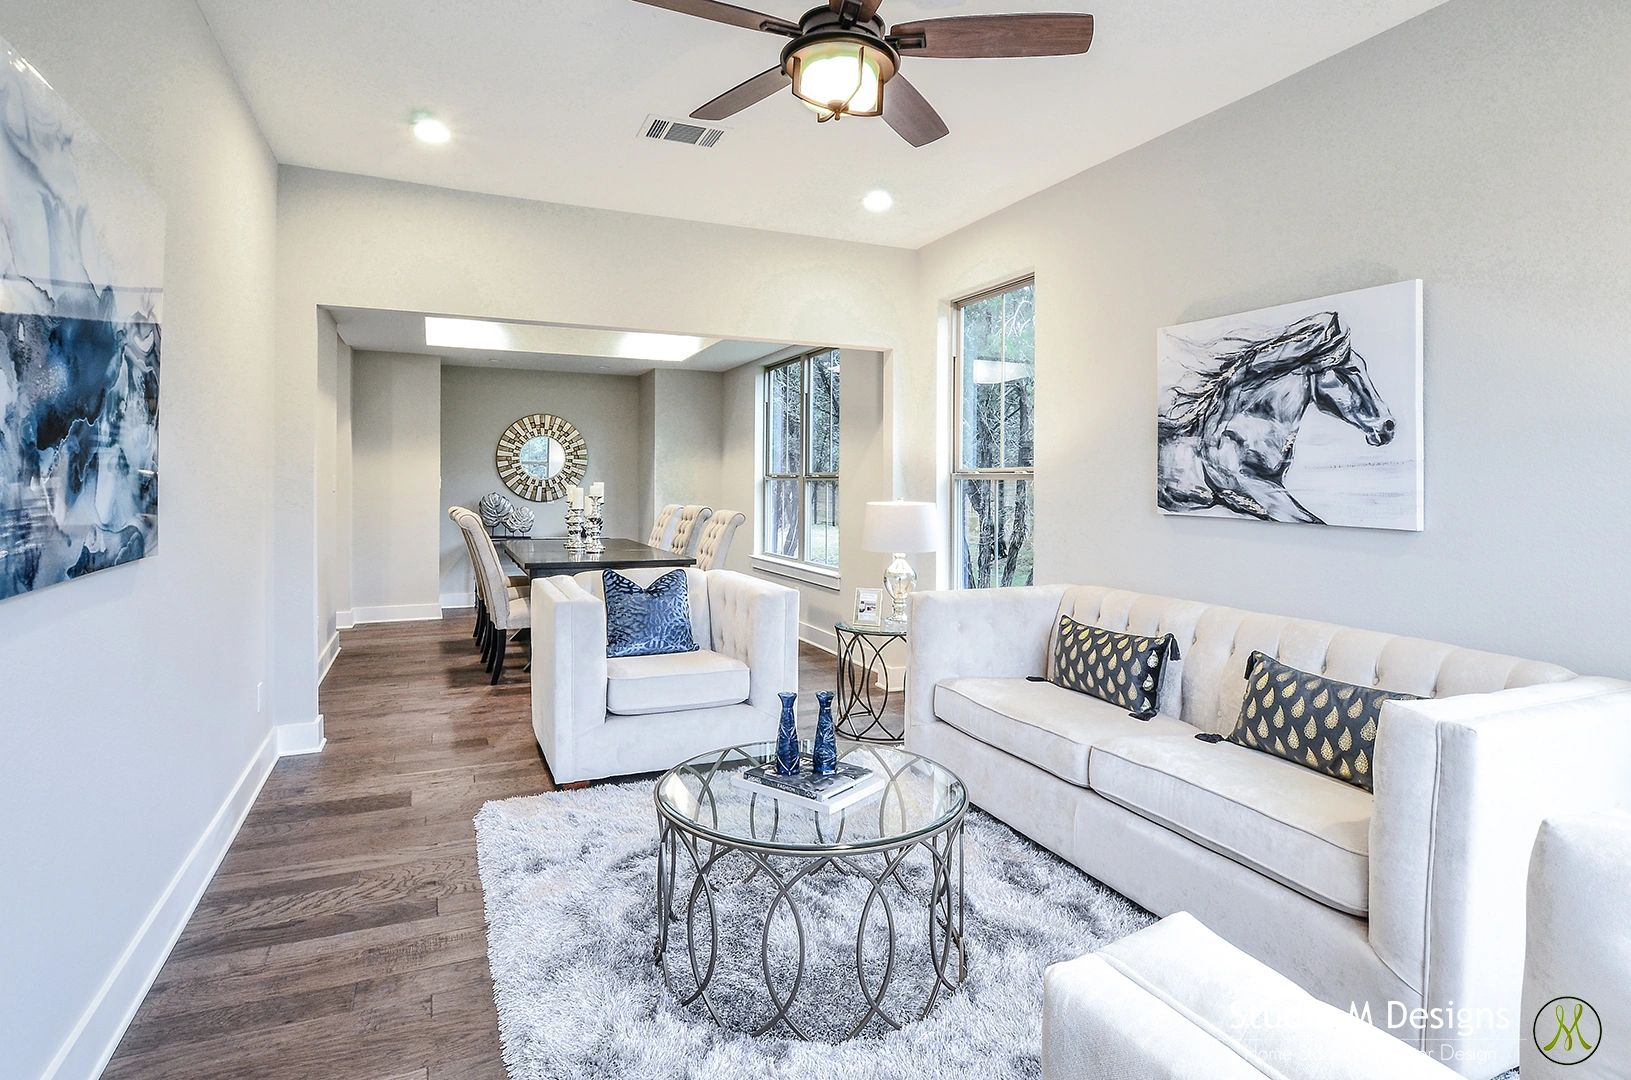 Best model home staging services in Austin